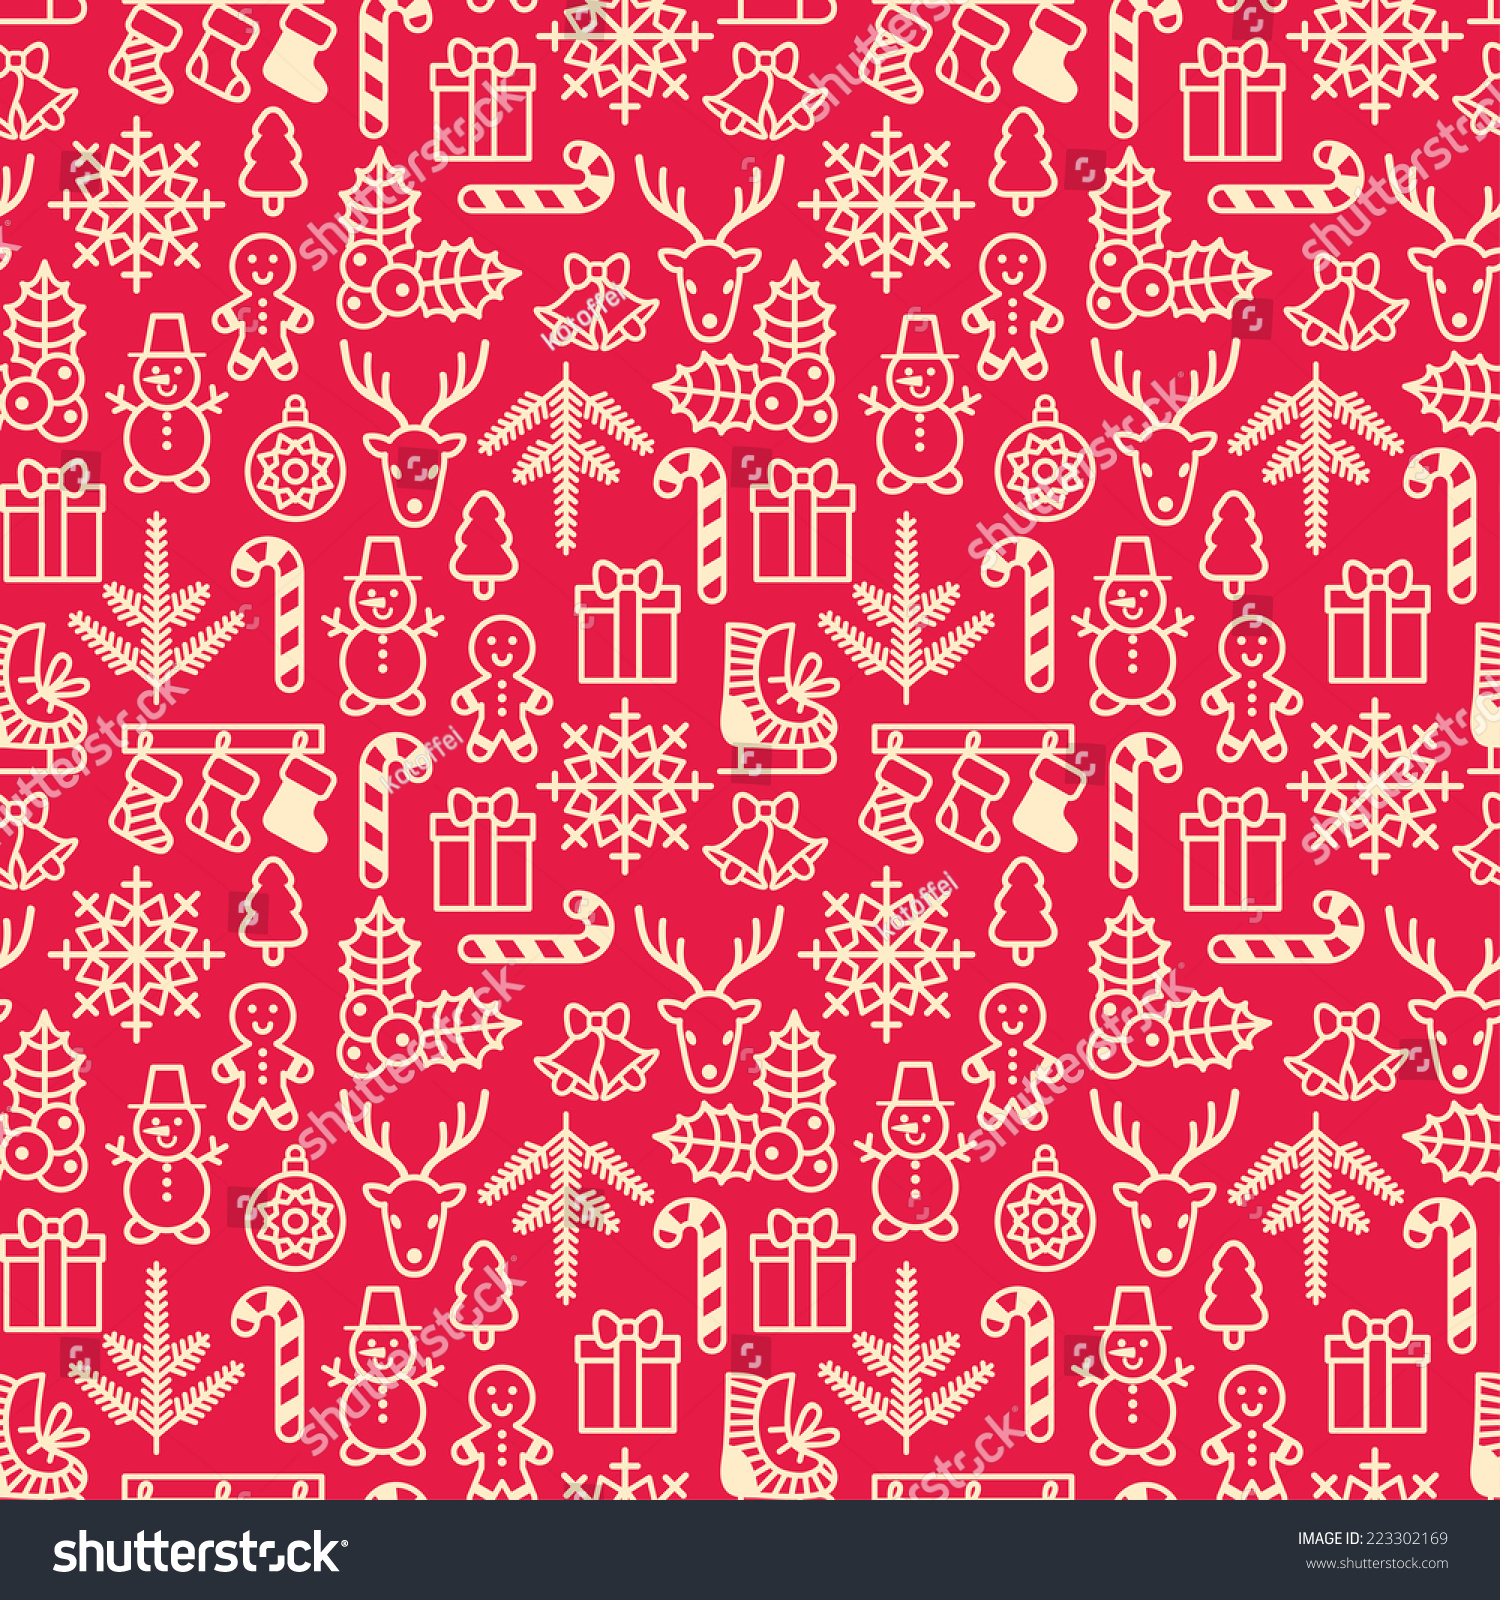 HD wallpapers vintage christmas gift wrap 0pattern36.ml